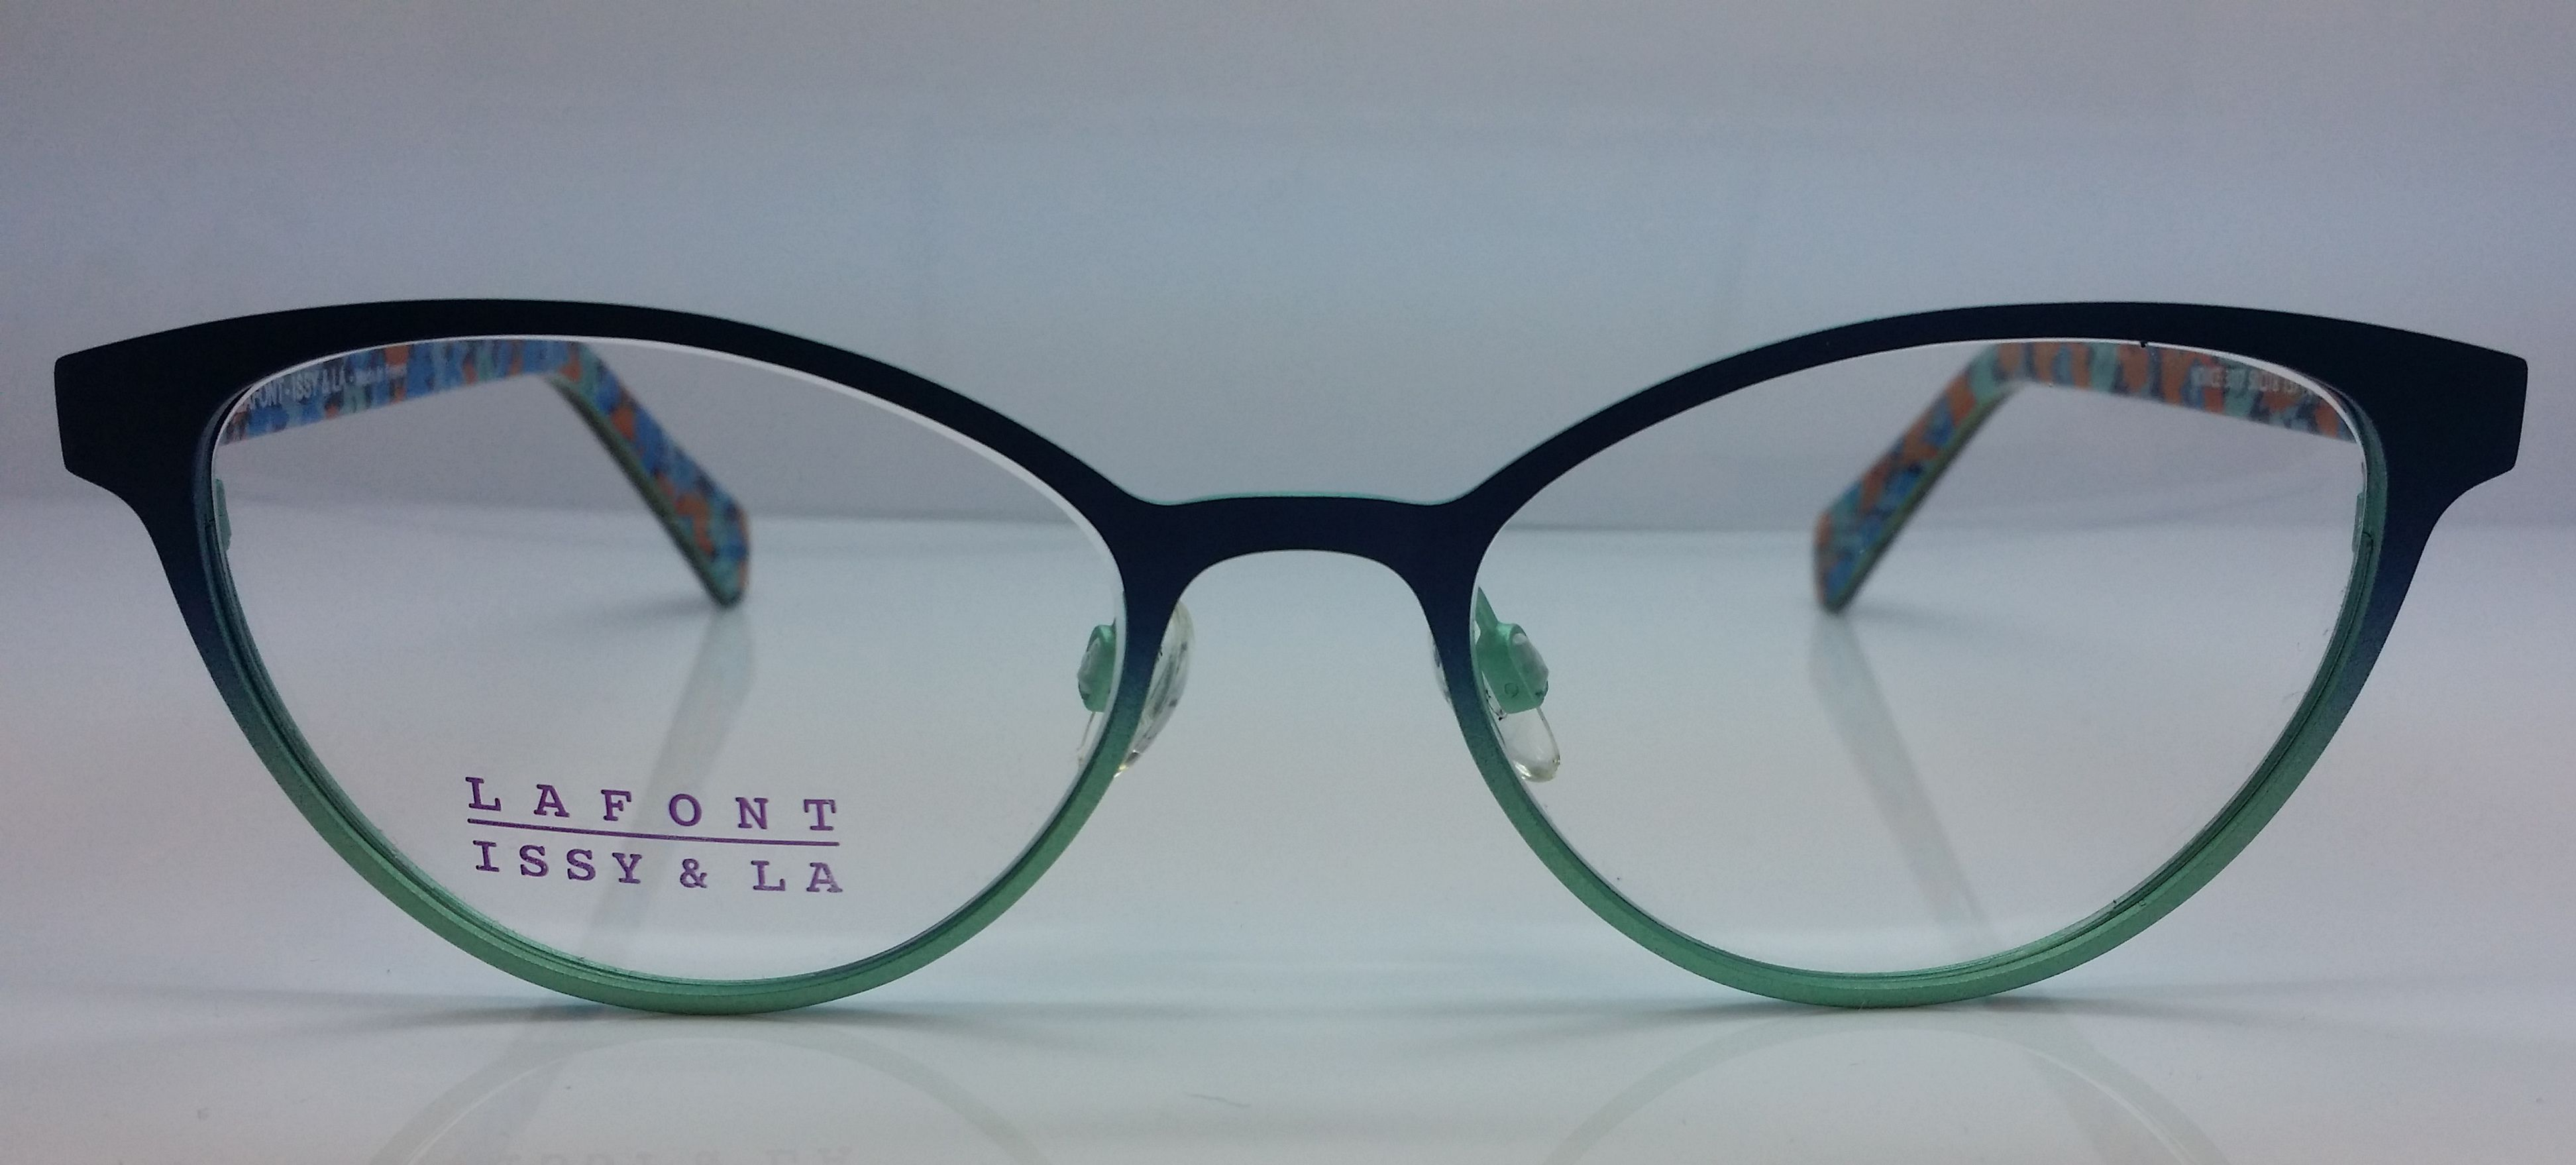 Lafont Eyewear | Special Spectacles | Pinterest | Brille